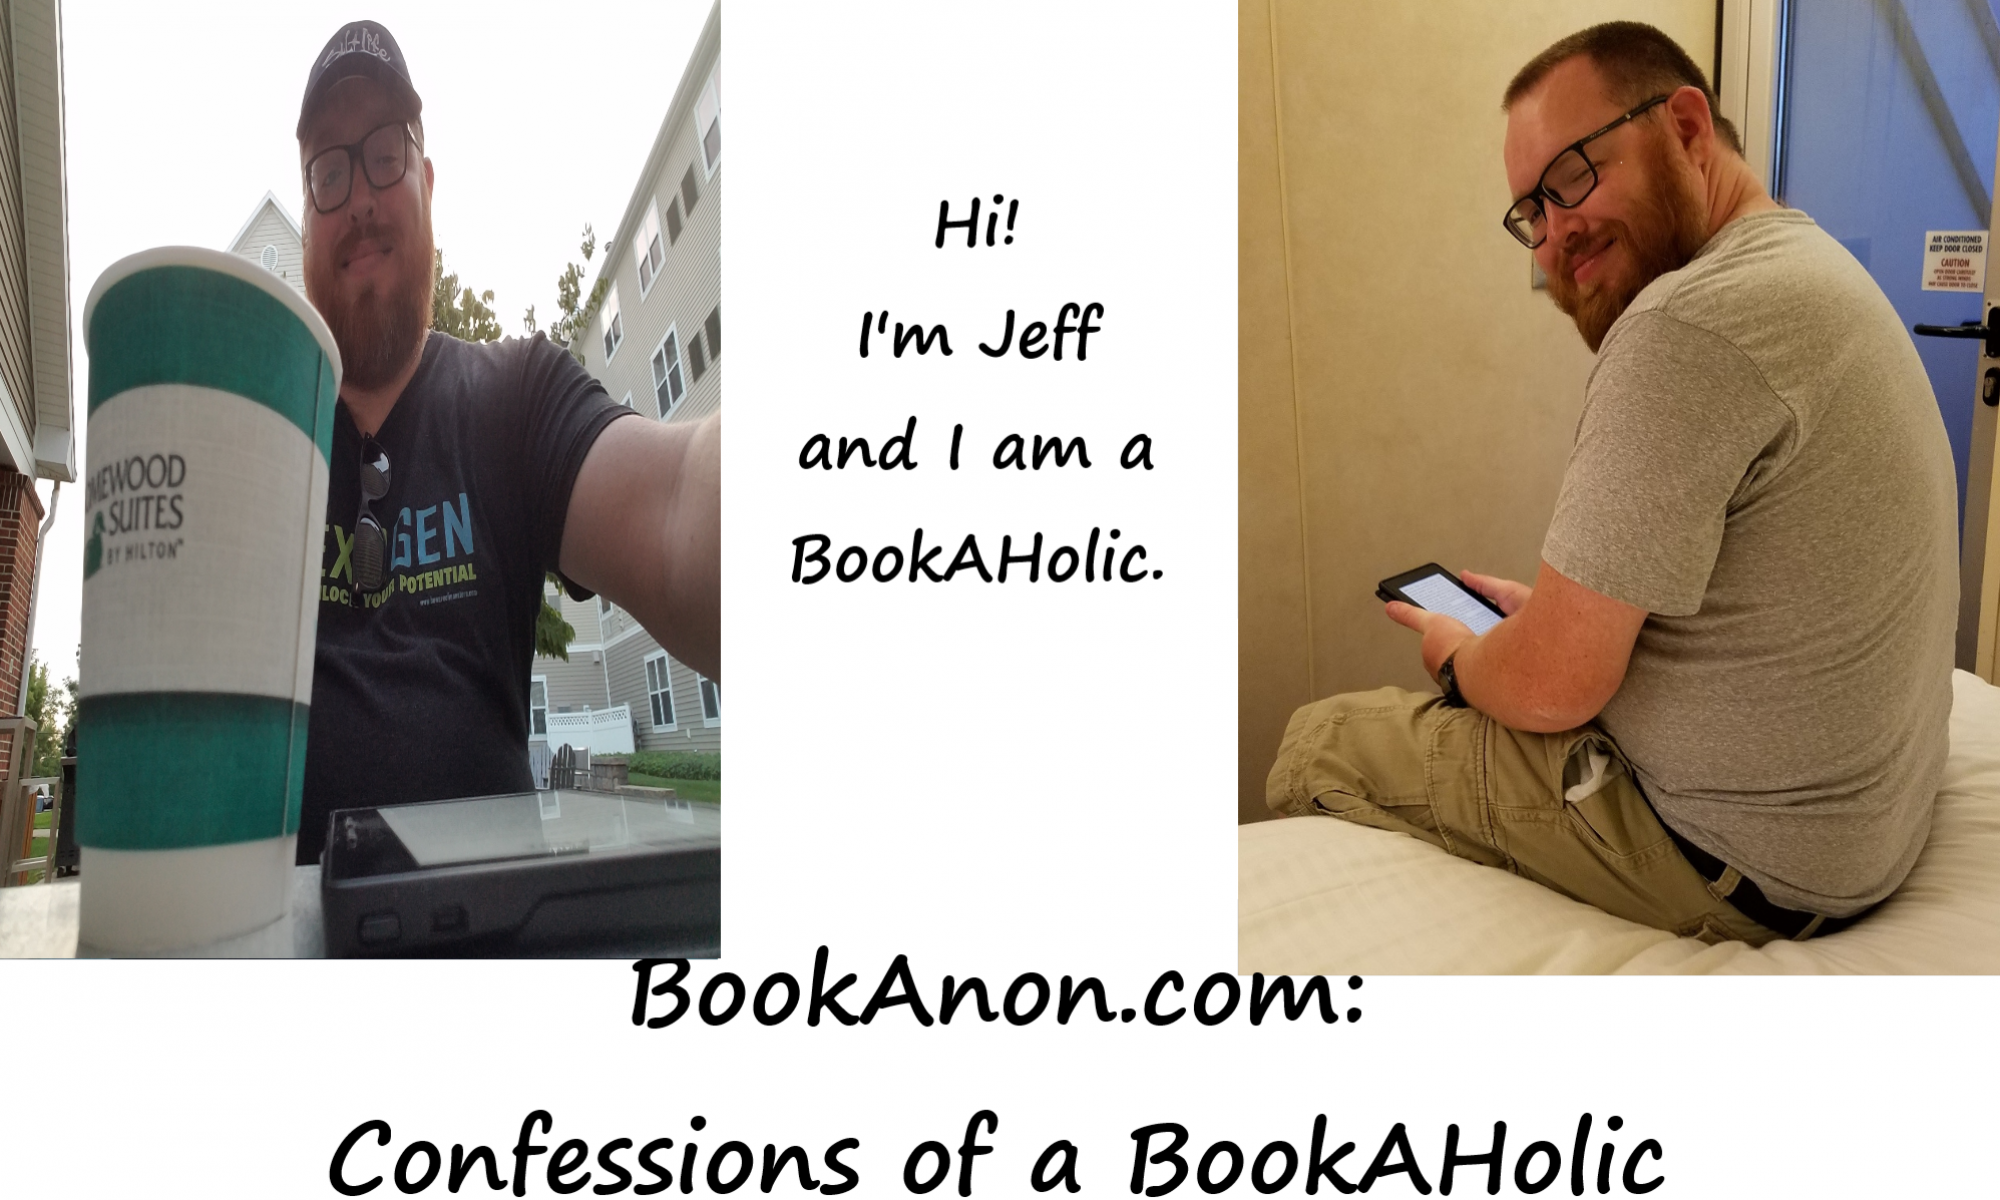 BookAnon.com: Confessions of a Bookaholic